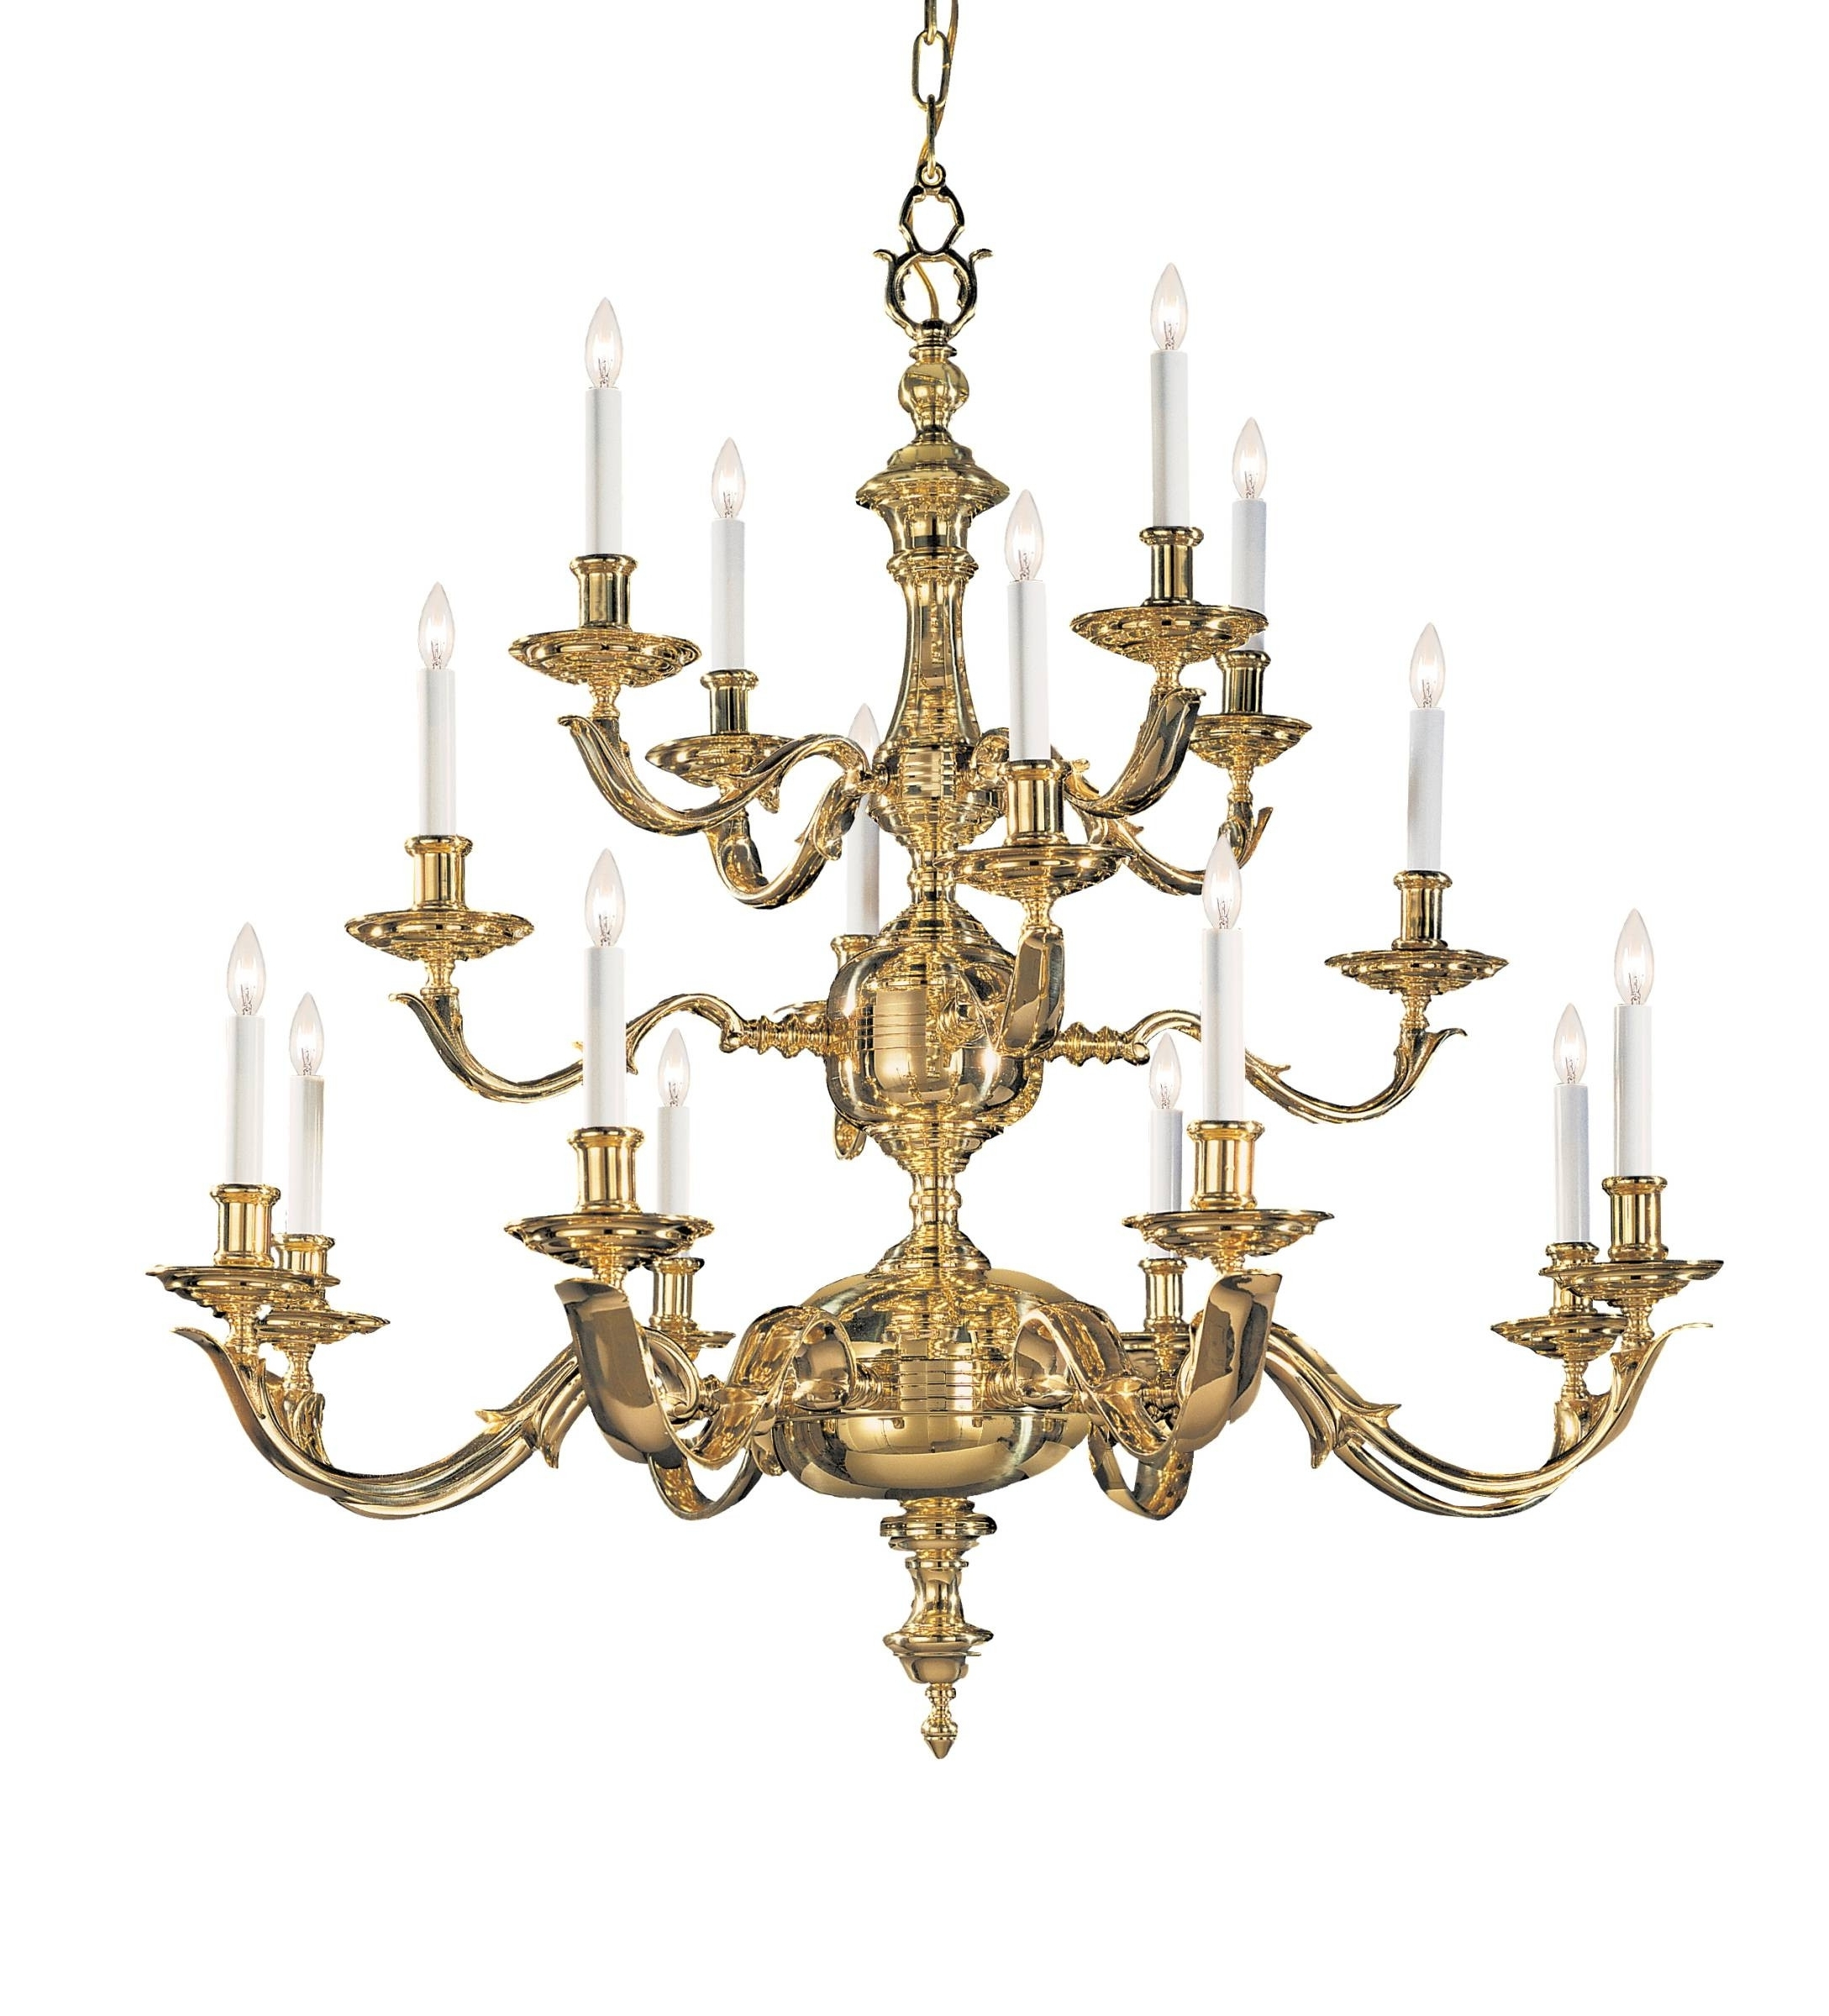 Most Recently Released Traditional Brass Chandeliers Intended For Chandeliers : Marvelous Brass Chandeliers New 12 Best Collection Of (View 7 of 15)